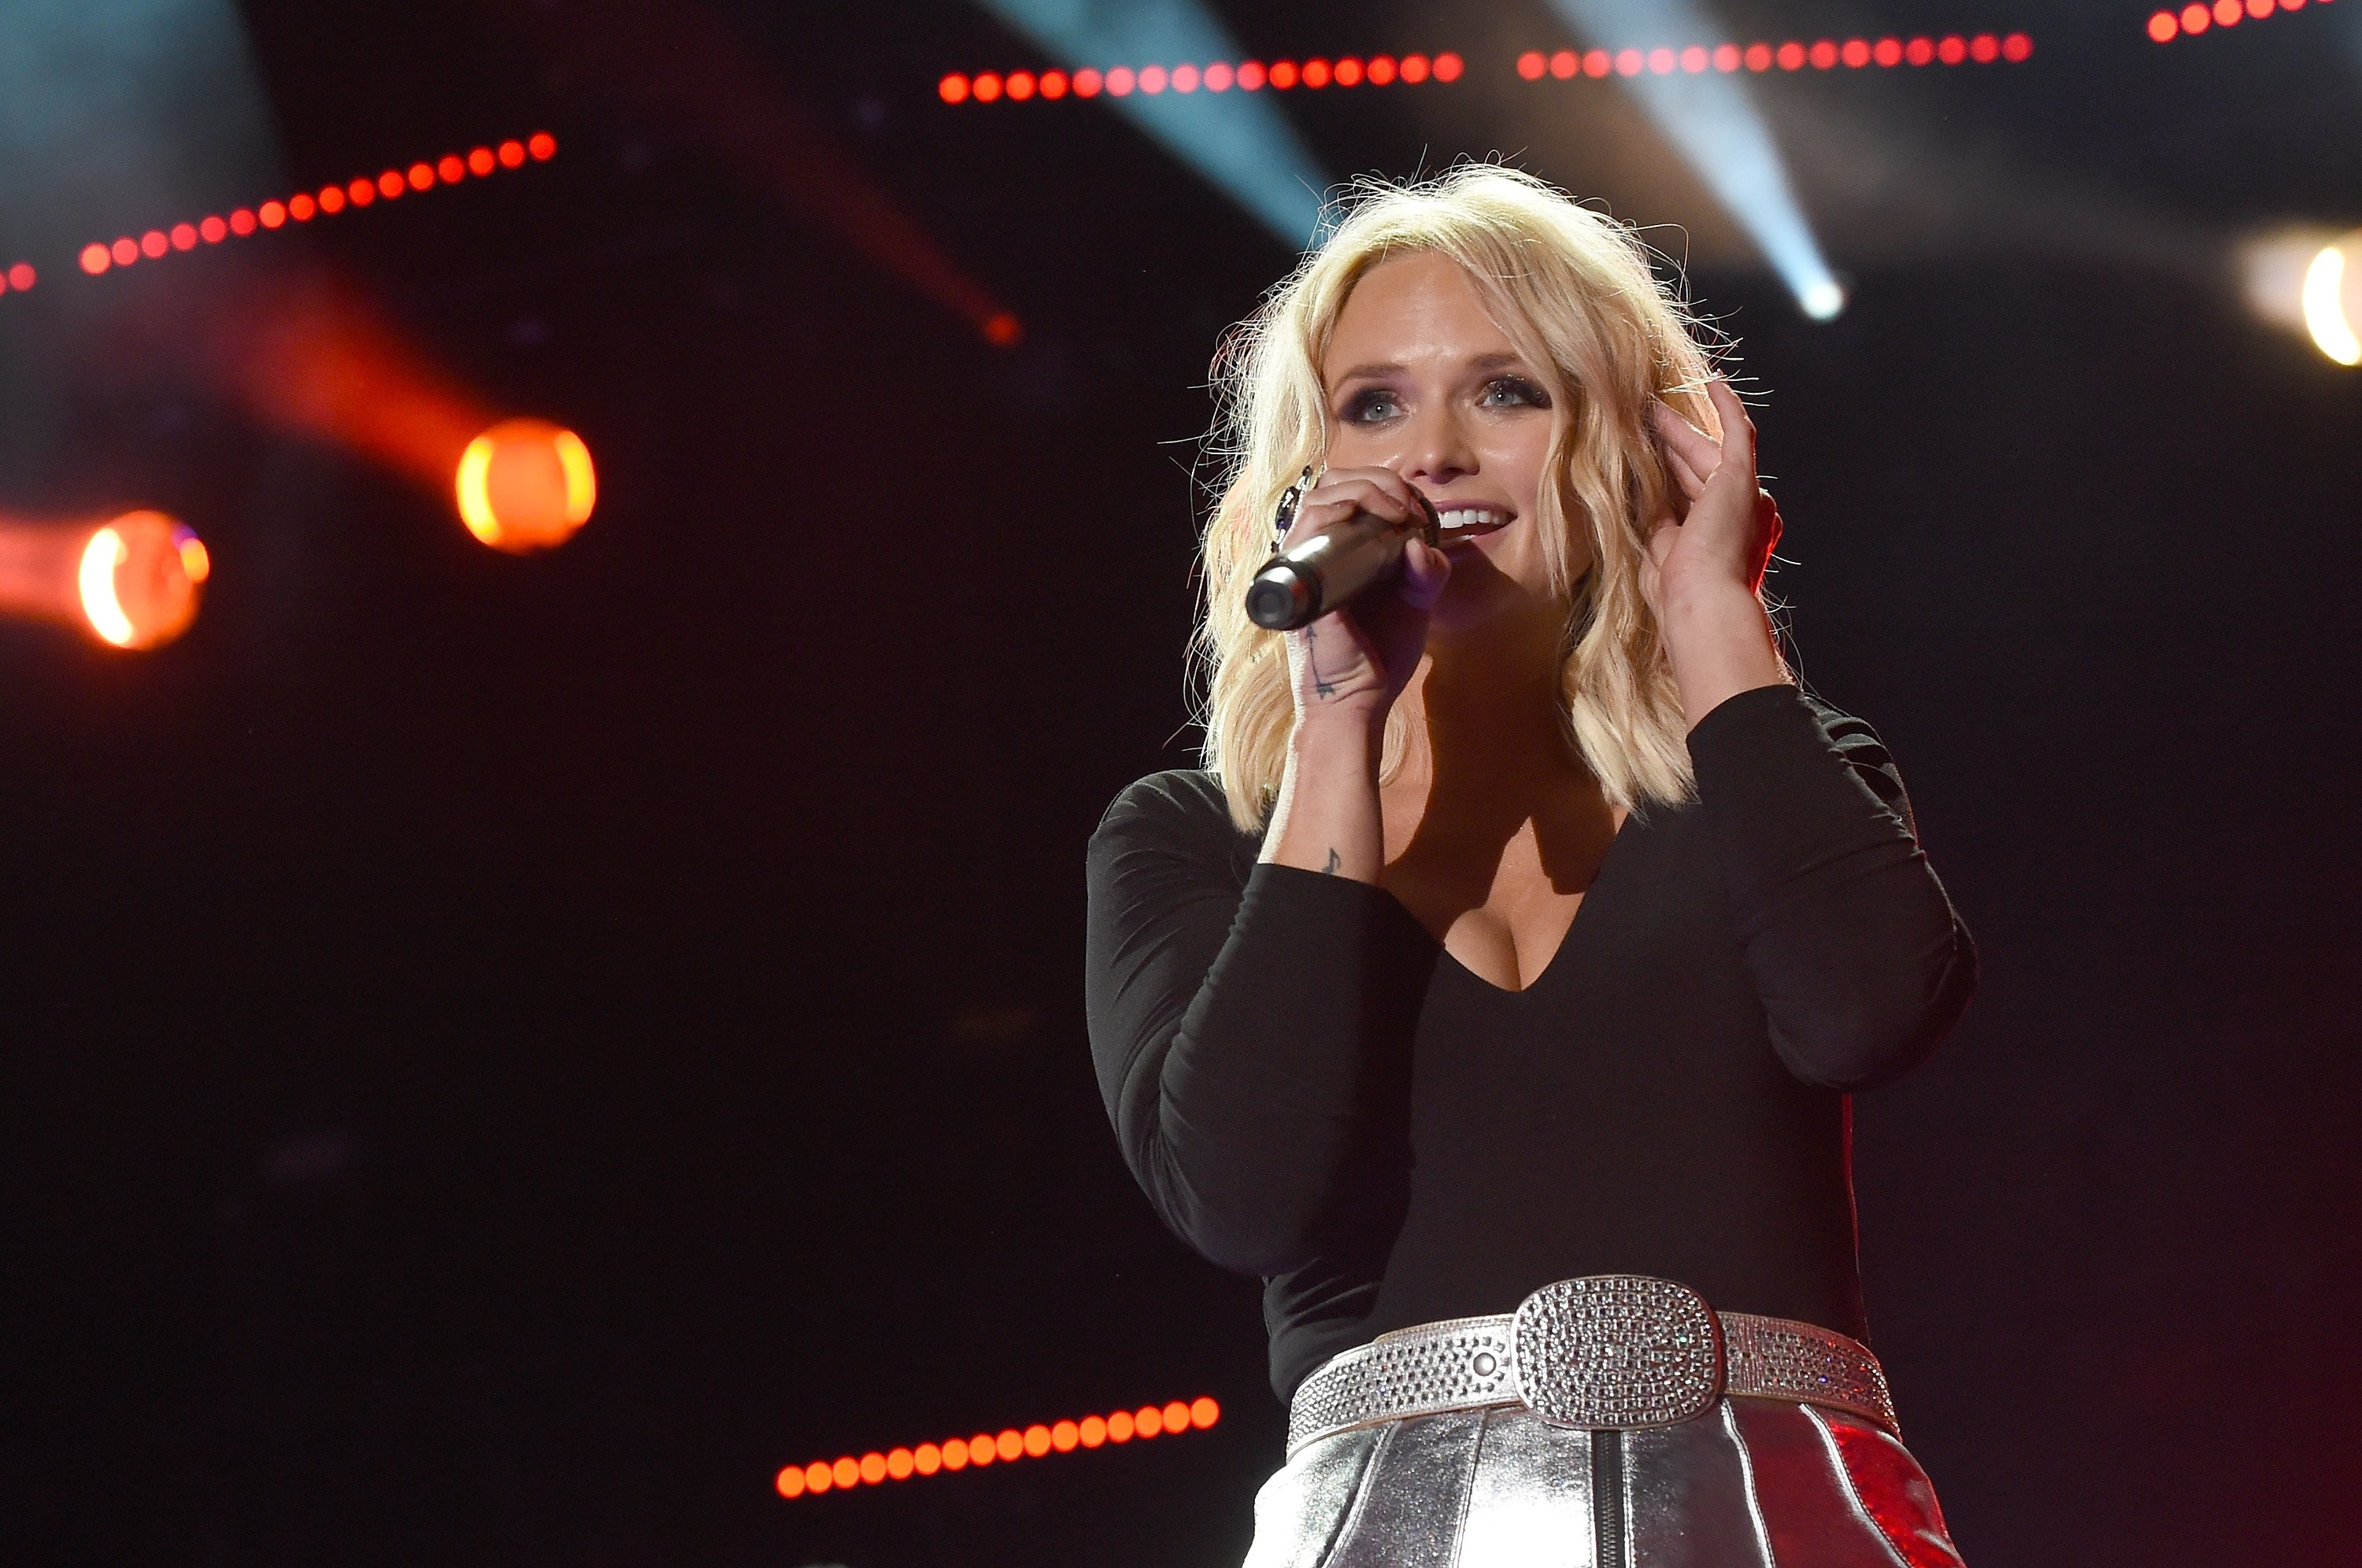 Miranda Lambert performs onstage during 2016 CMA Festival - Day 1 at Nissan Stadium on June 9, 2016 in Nashville, Tennessee | Photo: Getty Images